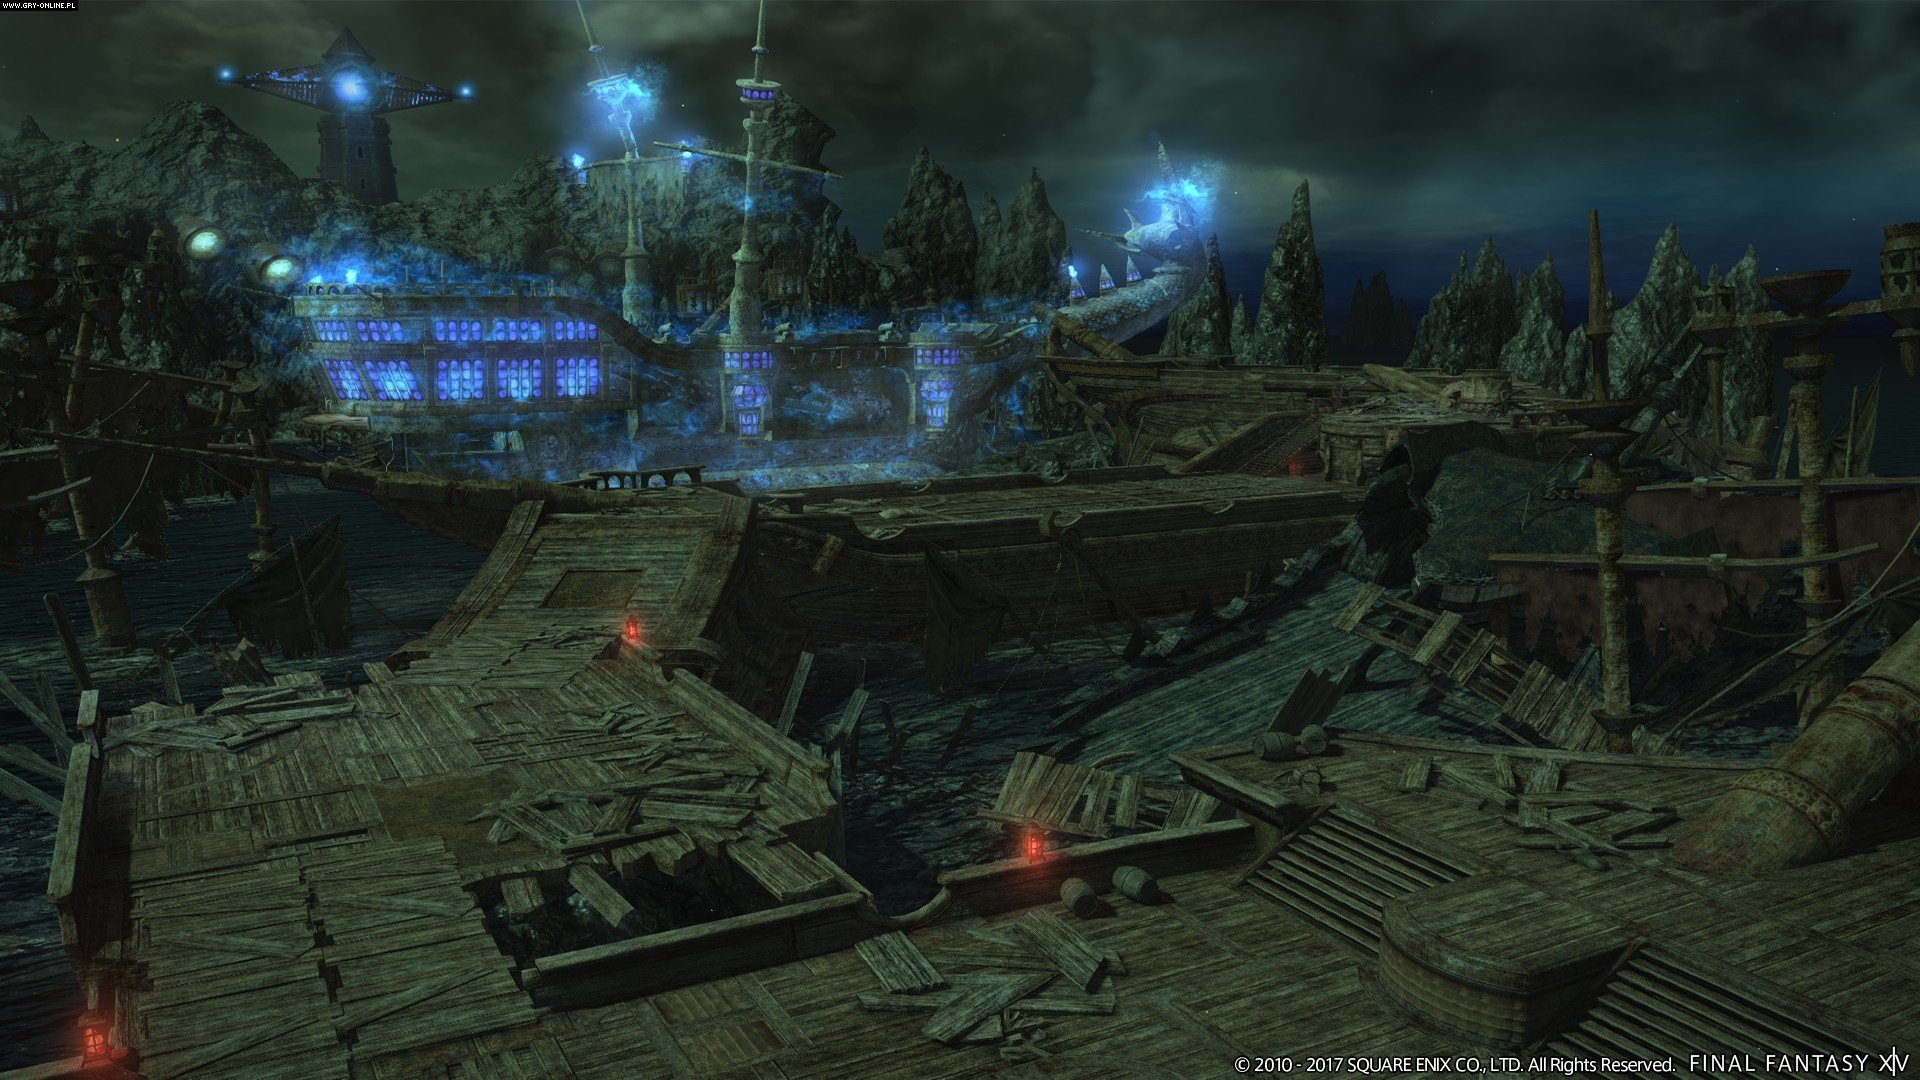 Final Fantasy XIV: Stormblood PS4, PC Gry Screen 117/179, Square-Enix / Eidos